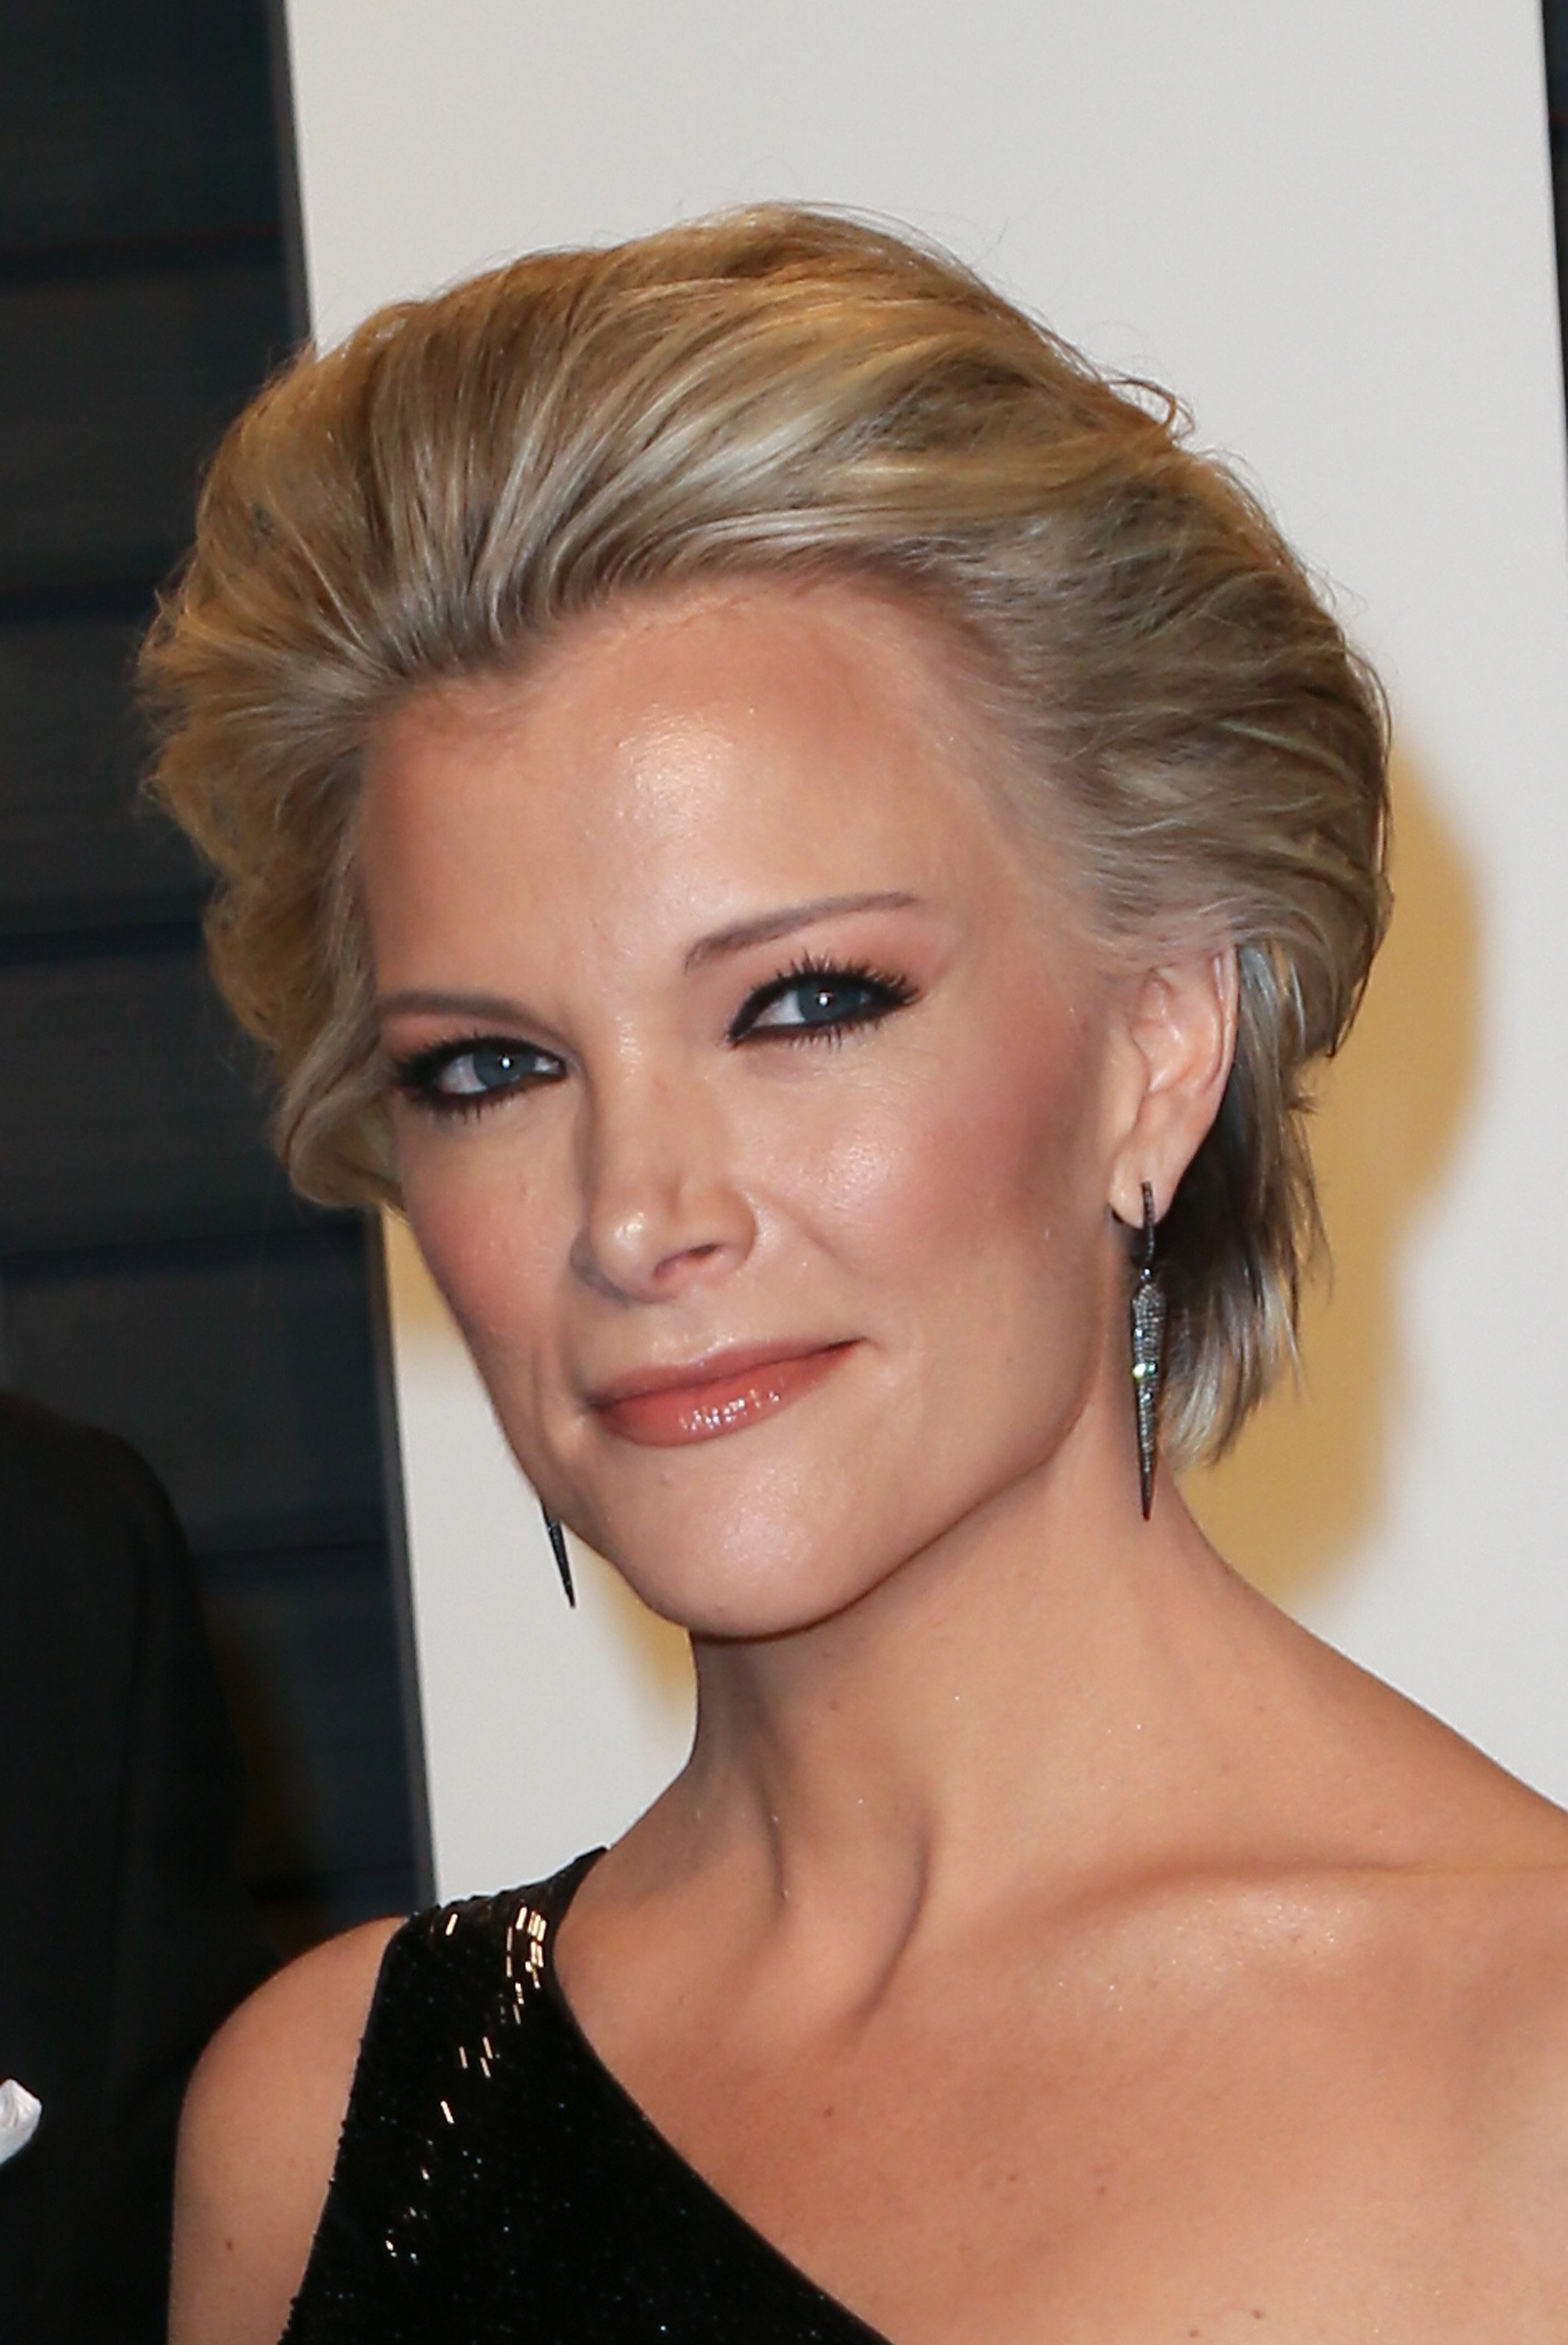 Megyn Kelly arrives at the 2016 Vanity Fair Oscar Party Hosted by Graydon Carter at the Wallis Annenberg Center for the Performing Arts on February 28, 2016, in Beverly Hills, California. | Source: Getty Images.